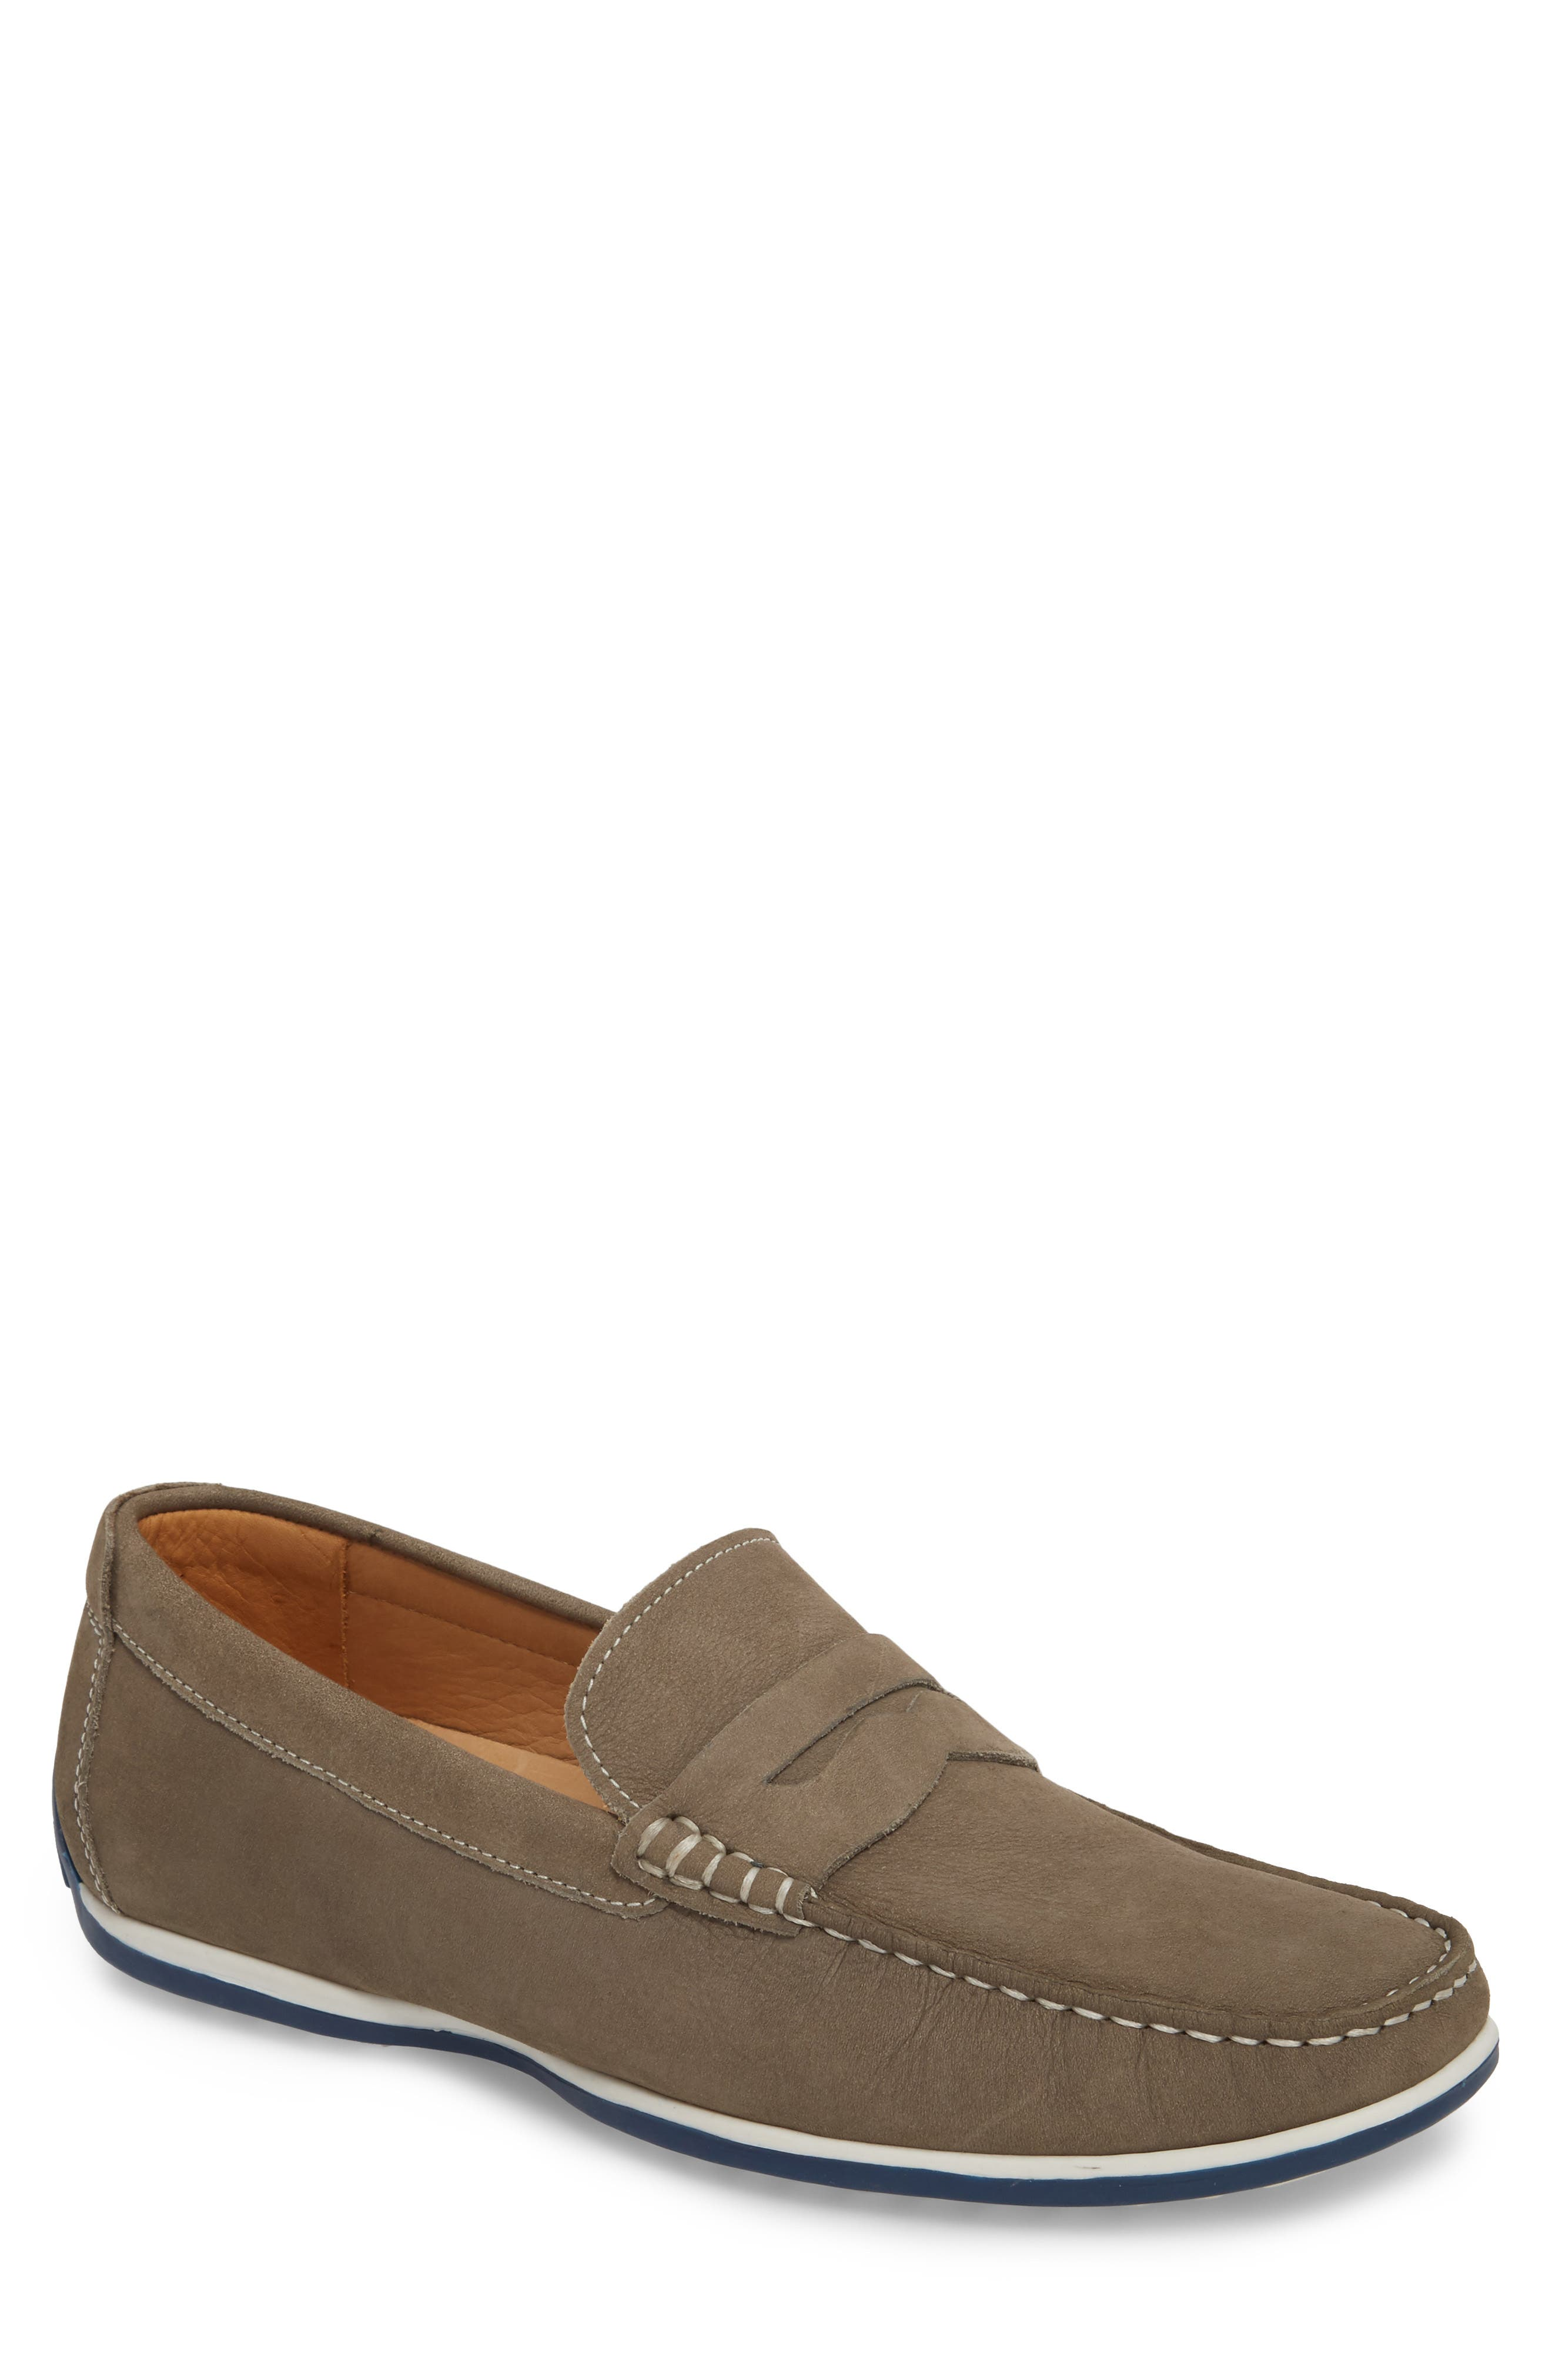 Breakside Driving Loafer,                         Main,                         color, 020